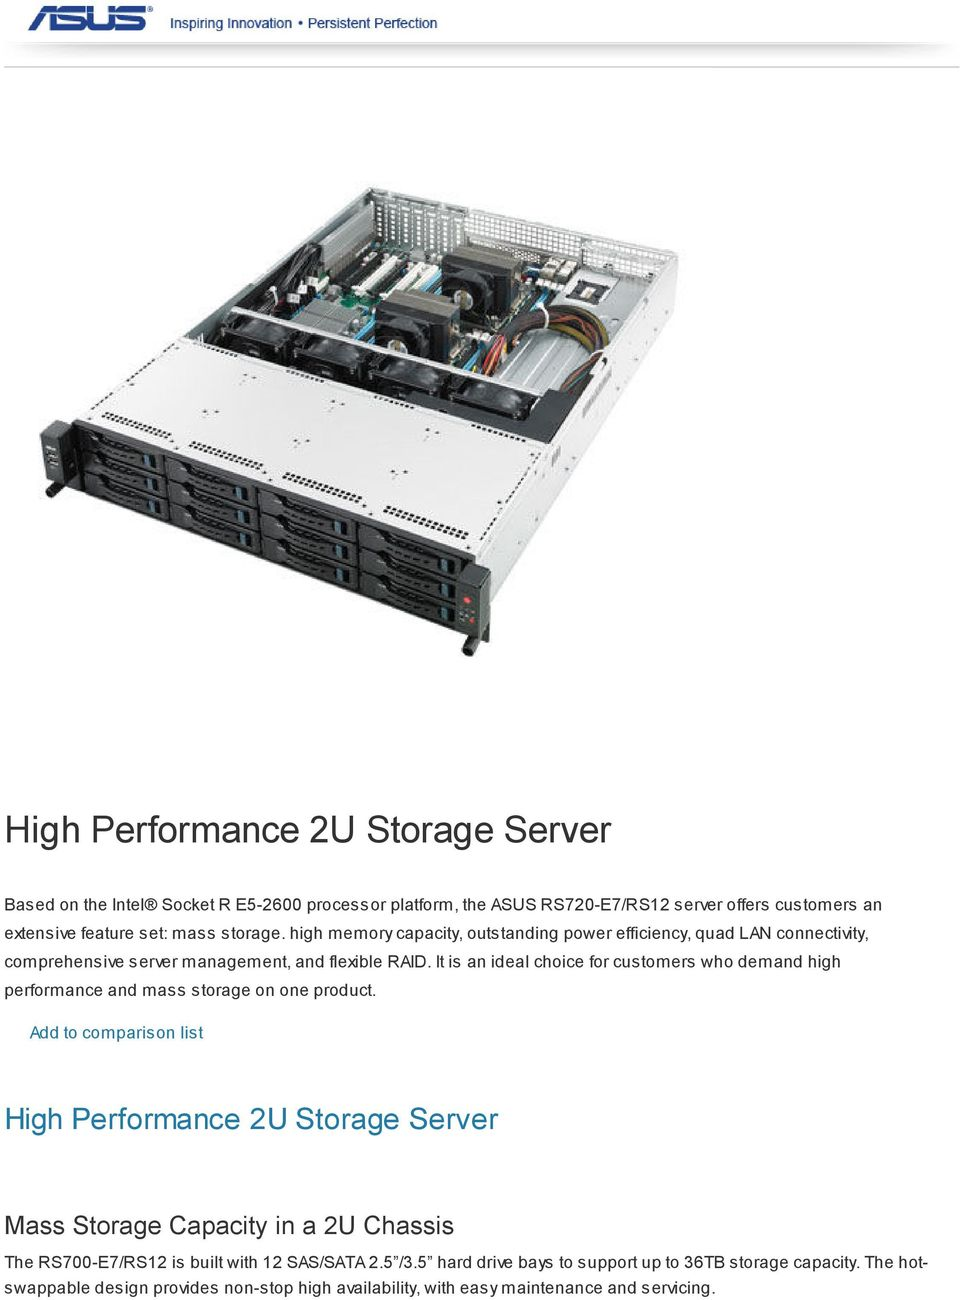 It is an ideal choice for customers who demand high performance and mass storage on one product.